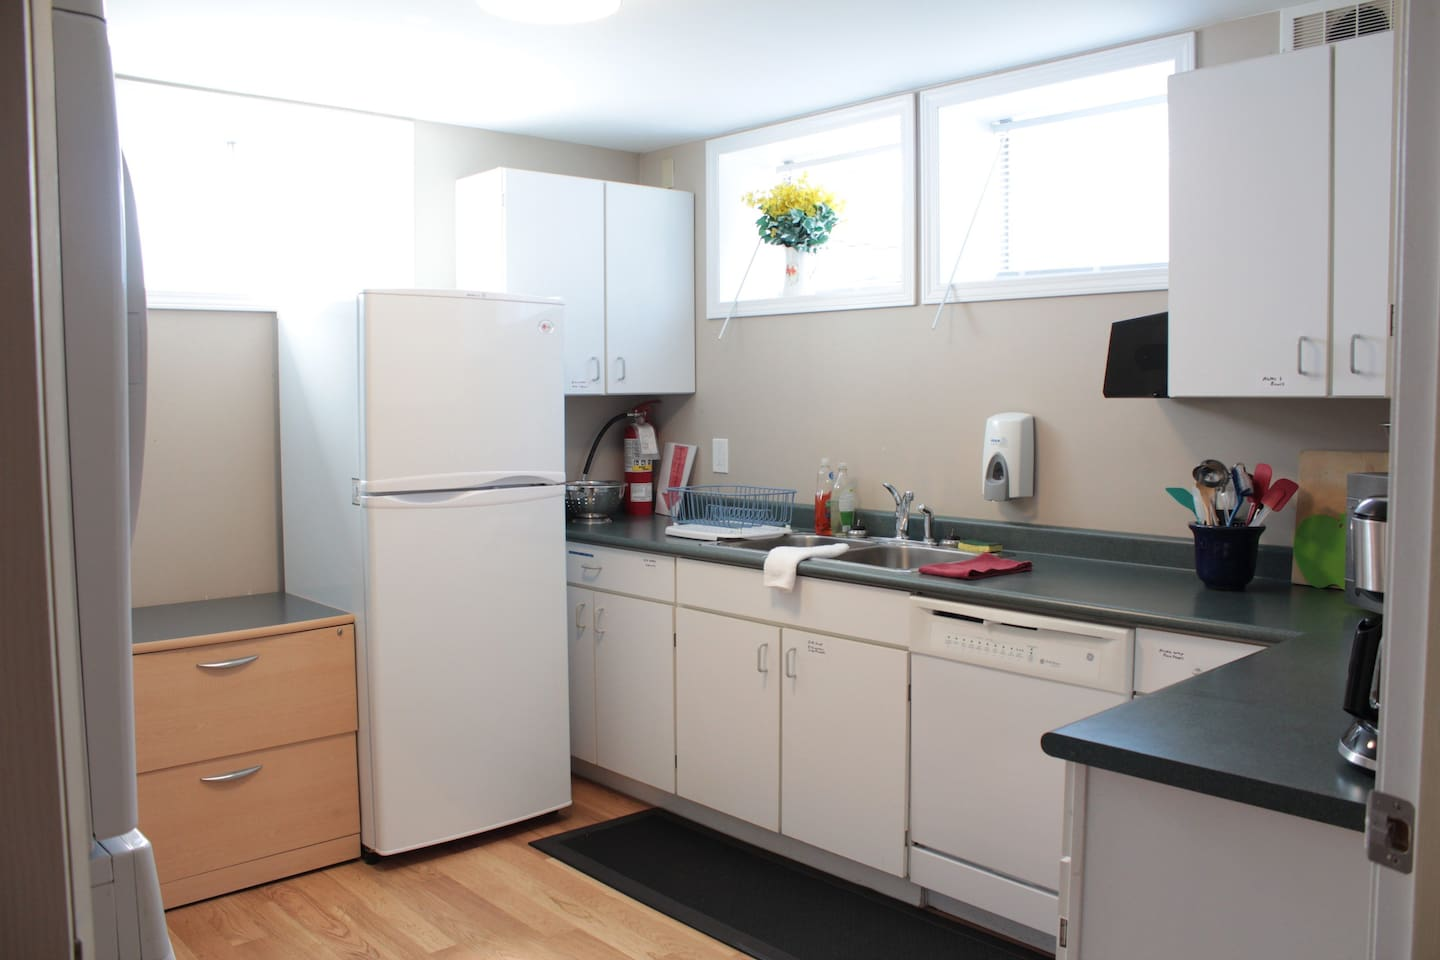 Full kitchen with fridge, stove, washer and dryer